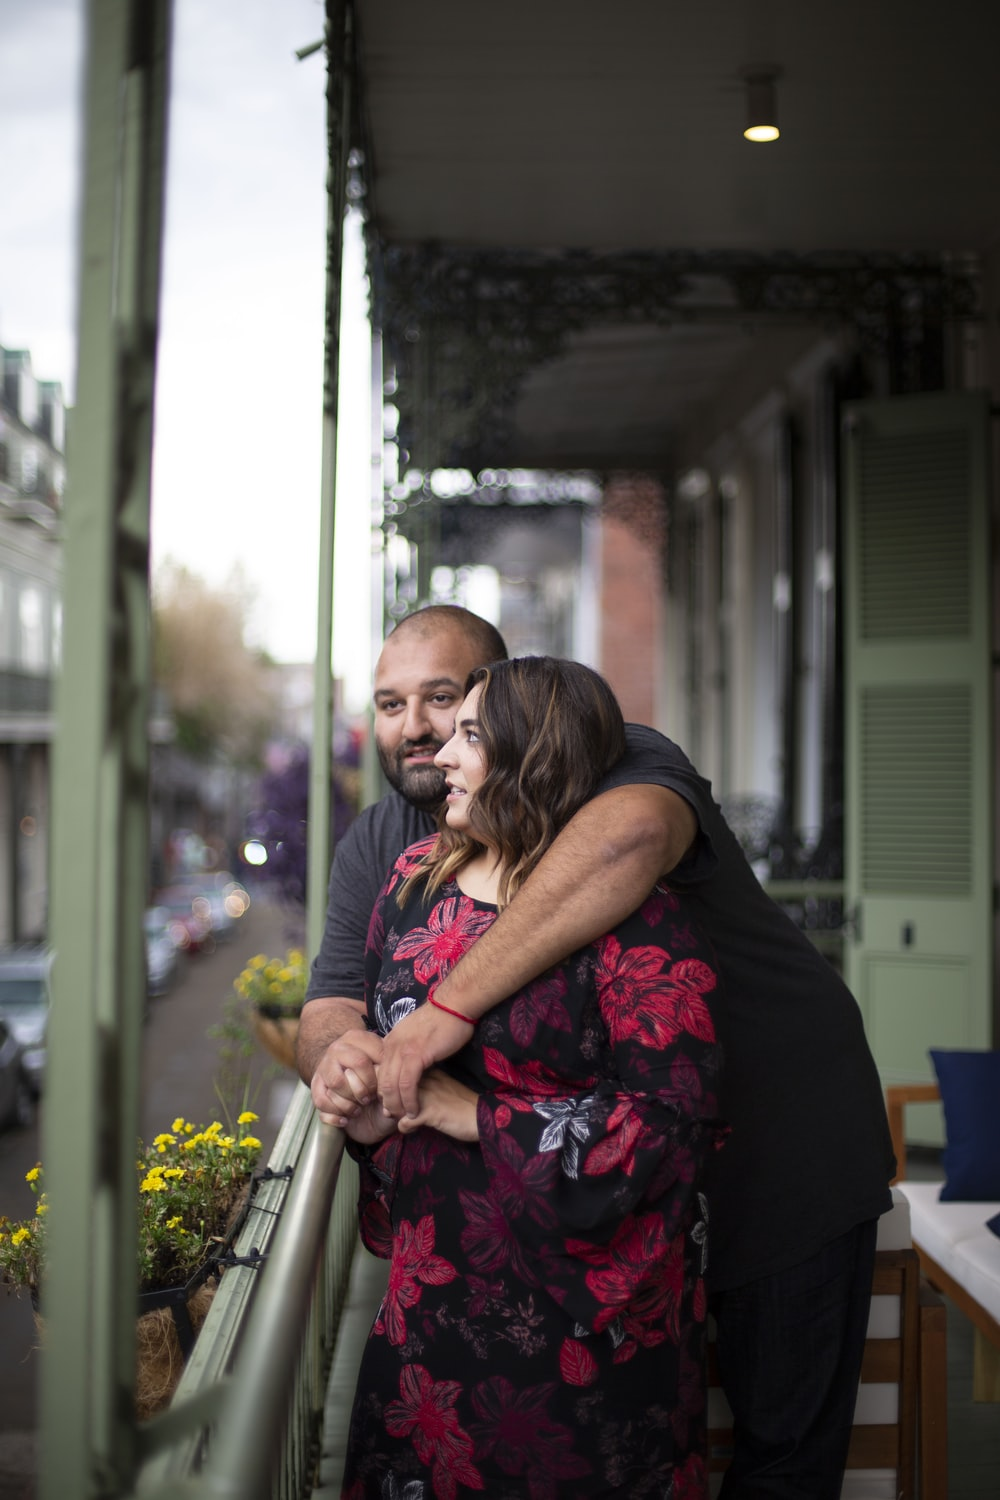 woman in black and pink floral dress hugging man in black t-shirt